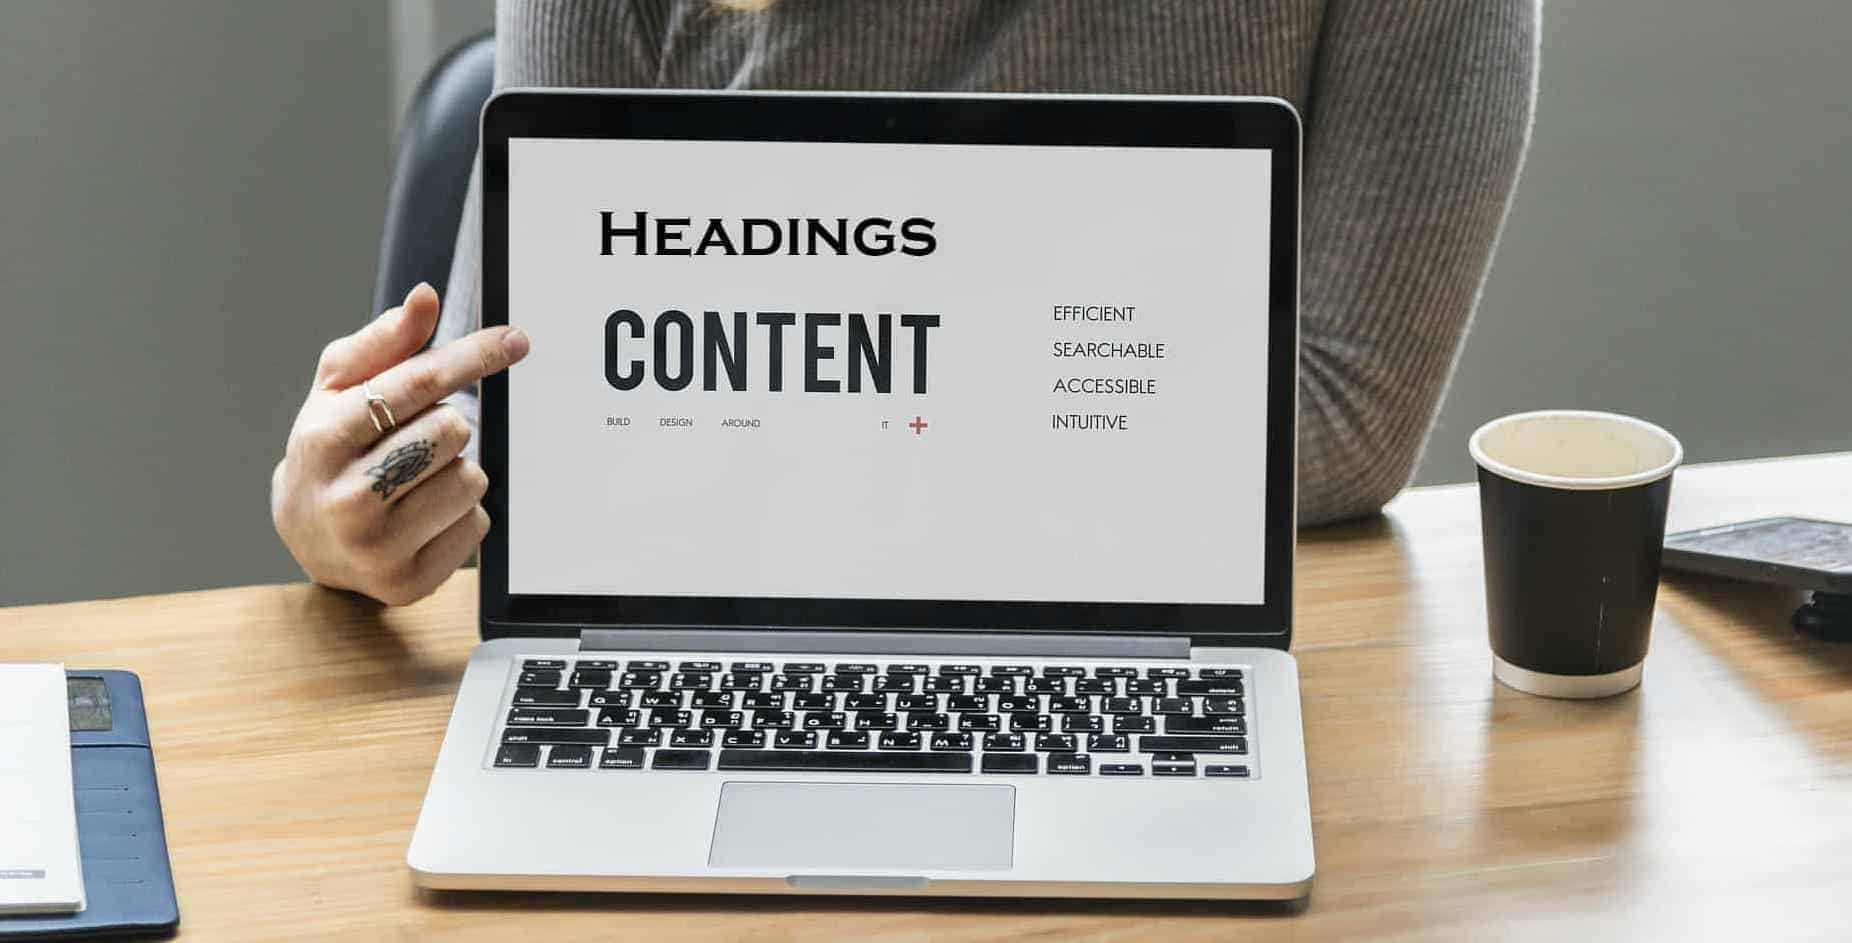 headings and content of your post are good places to place keywords